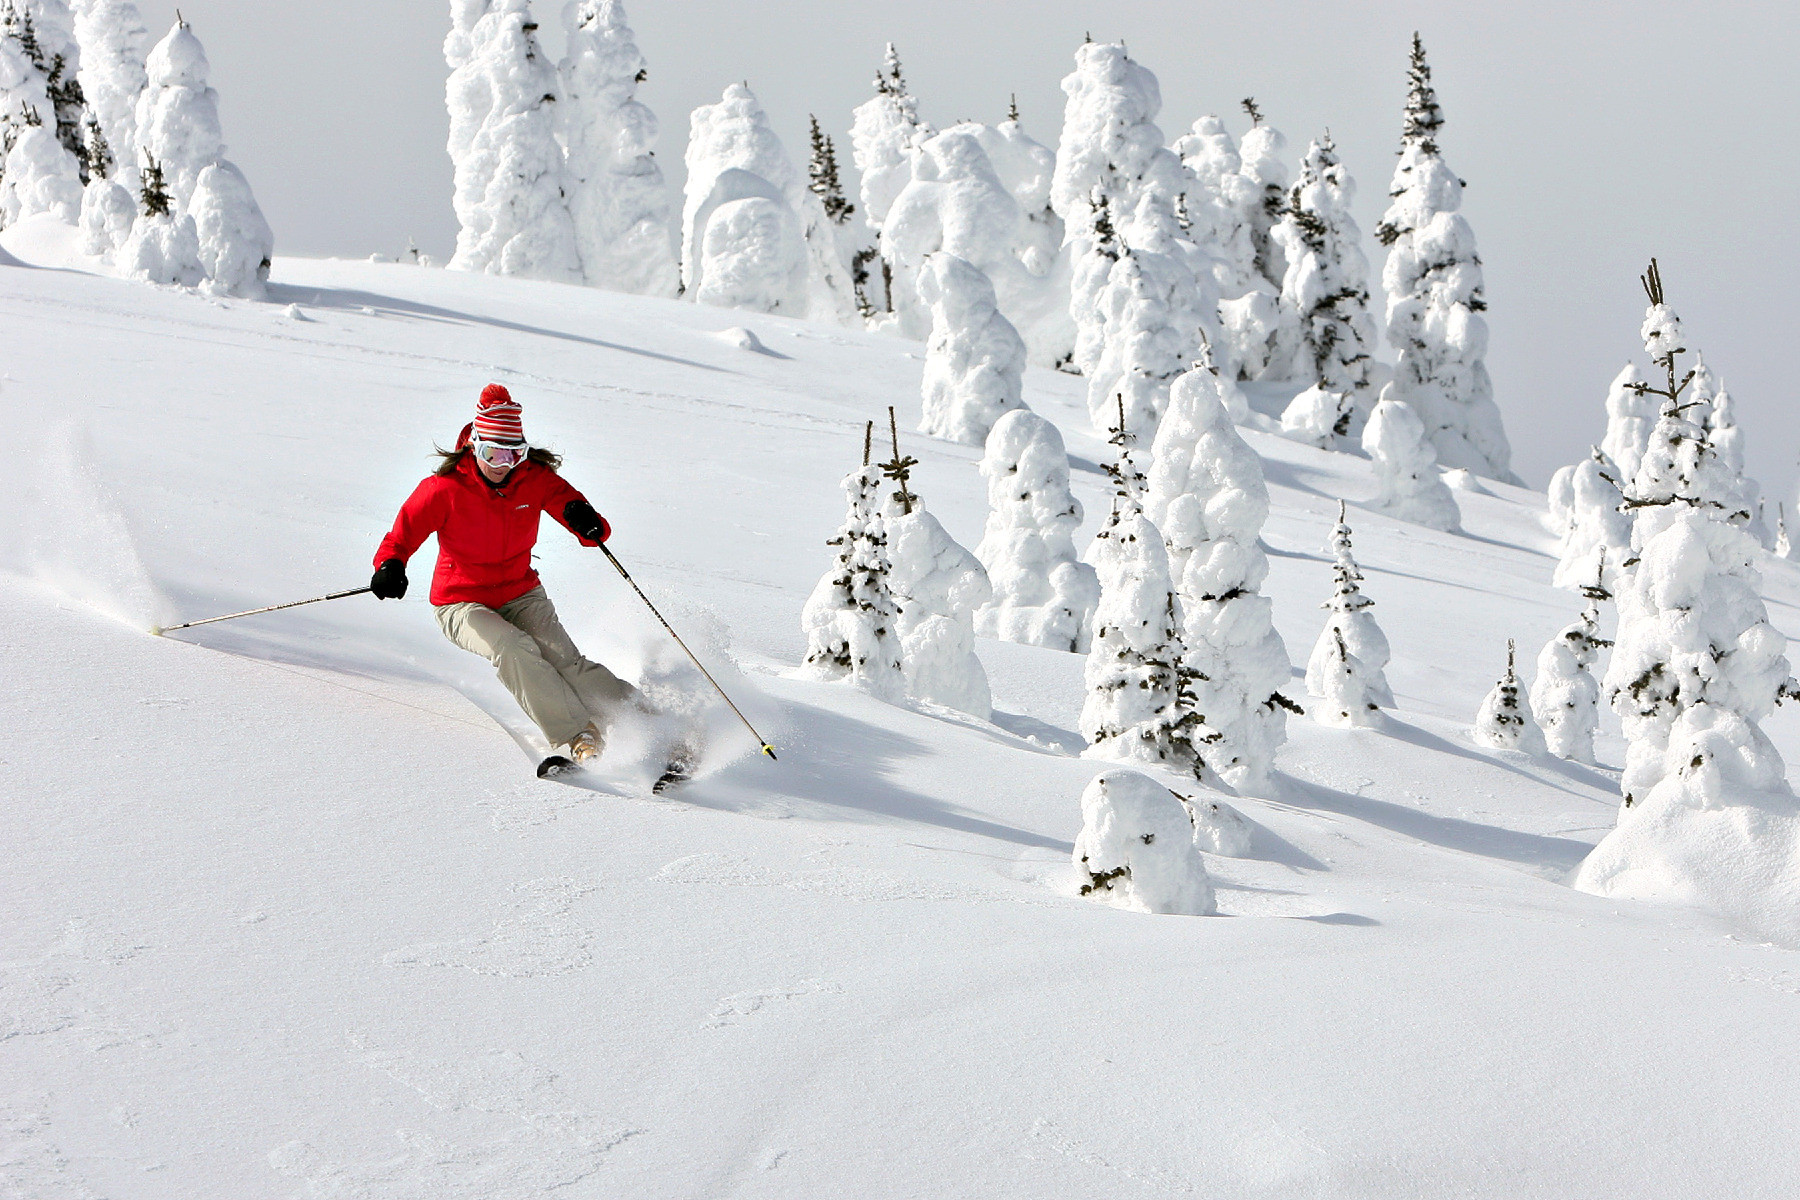 A skier dodges snow ghosts at Sun Peaks. Photo by Paul Morrison, courtesy of Tourism Sun Peaks.